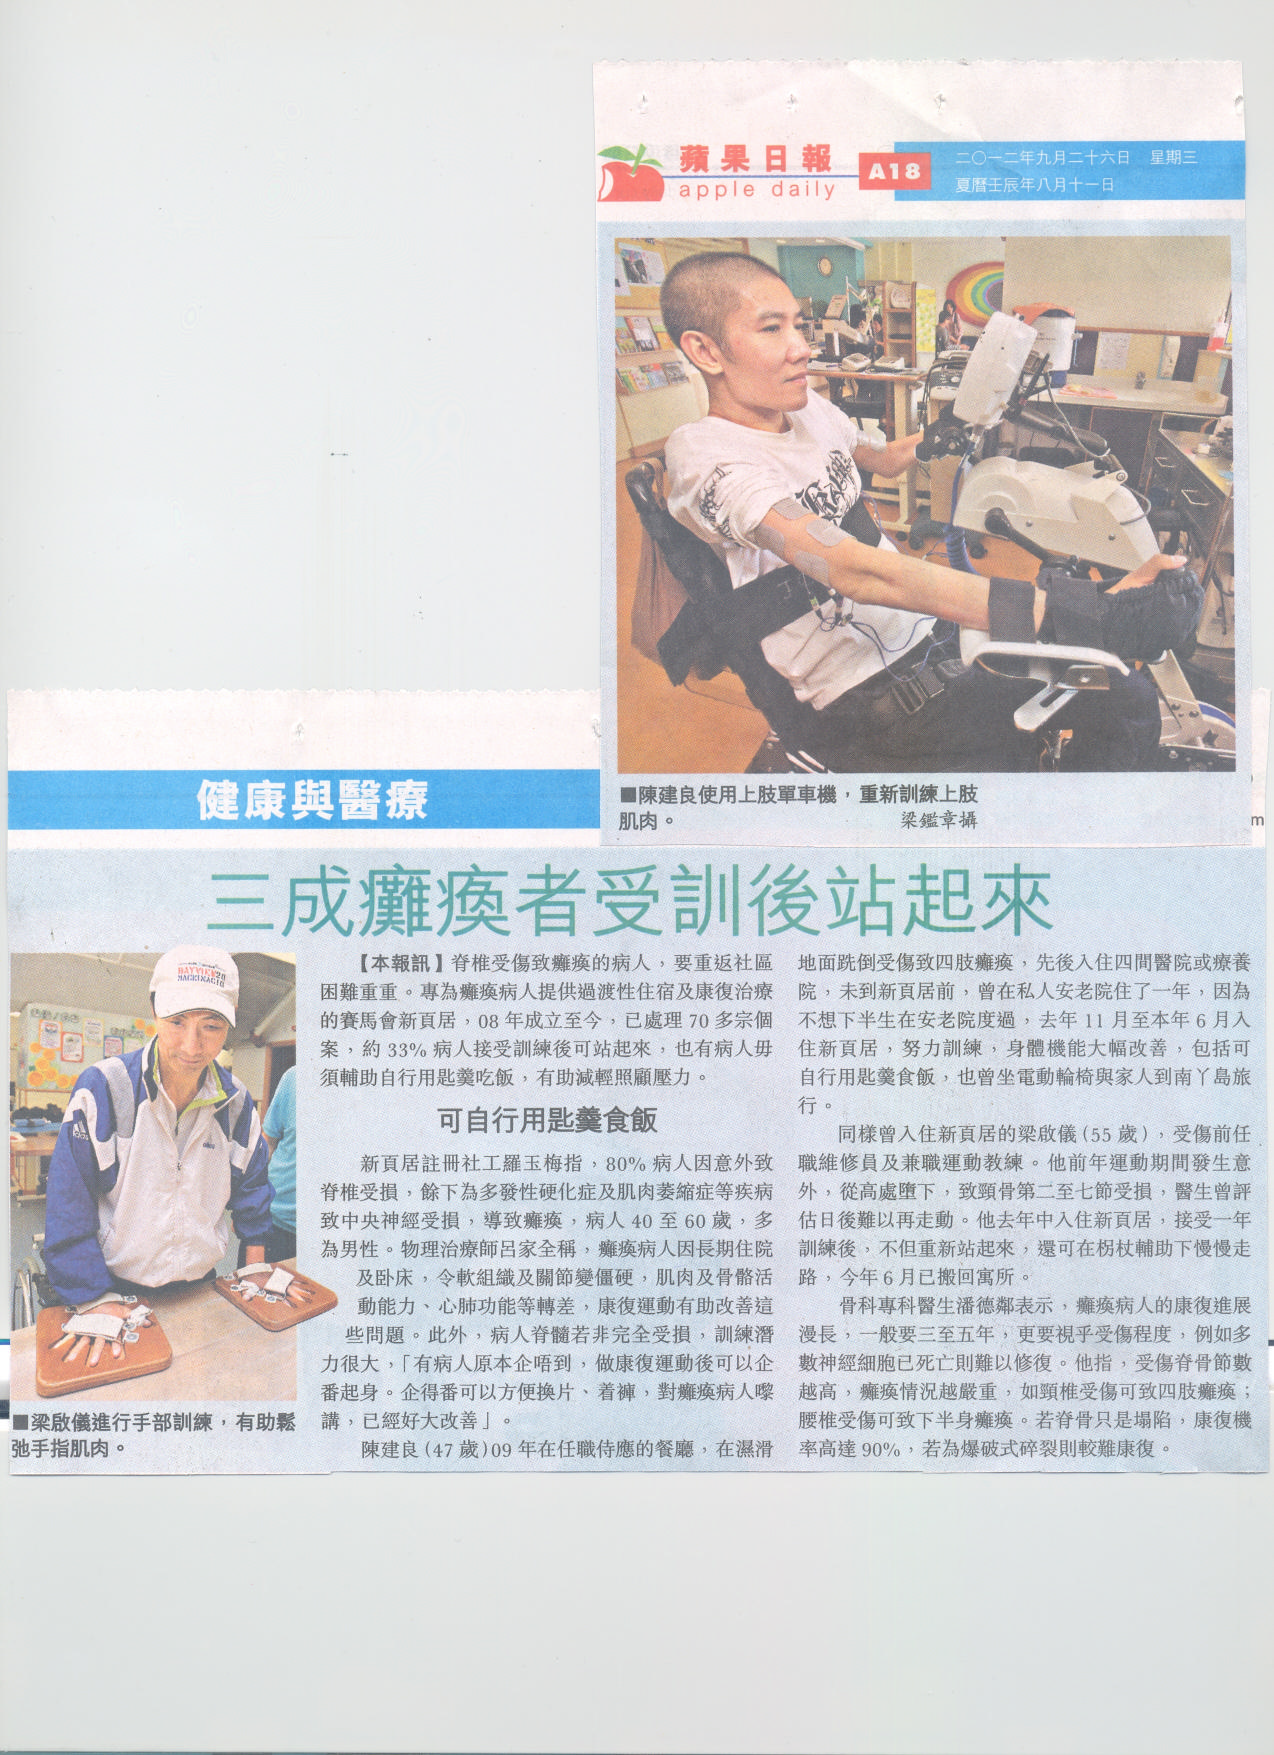 Daily Apple Newspaper http://www.rehabguide.hk/life_news.php